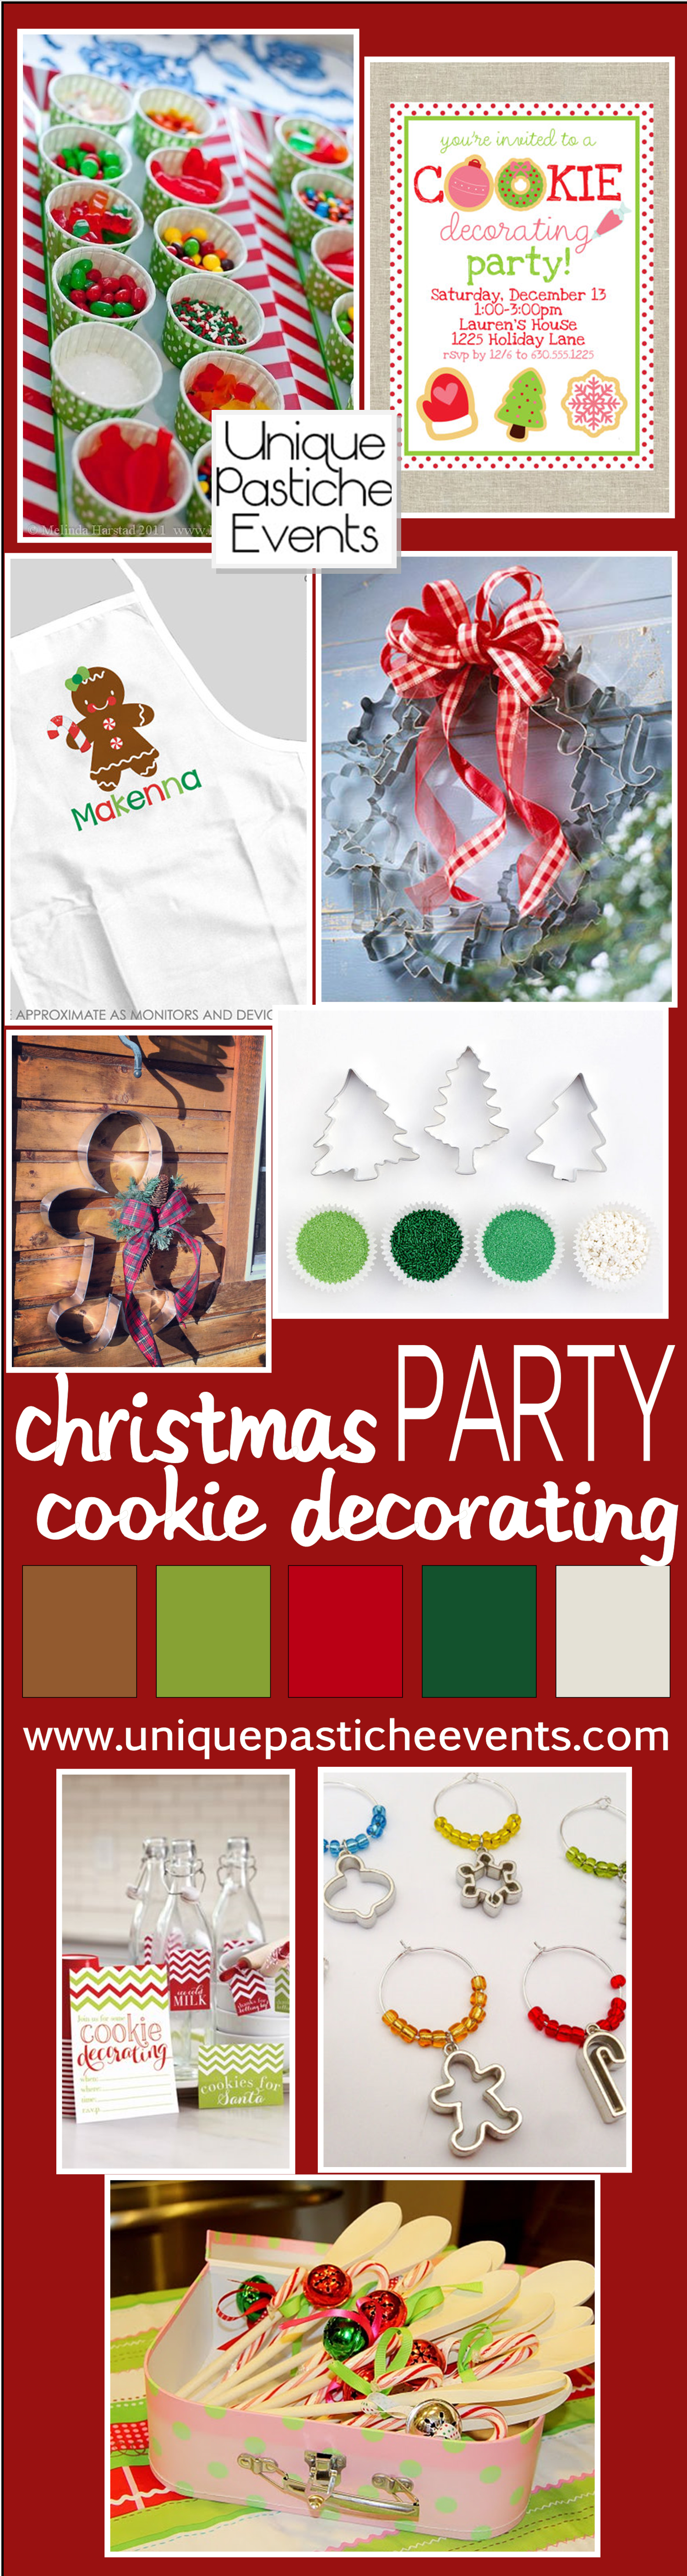 Cookie decorating party ideas - Christmas Cookie Decorating Party Ideas By Unique Pastiche Events